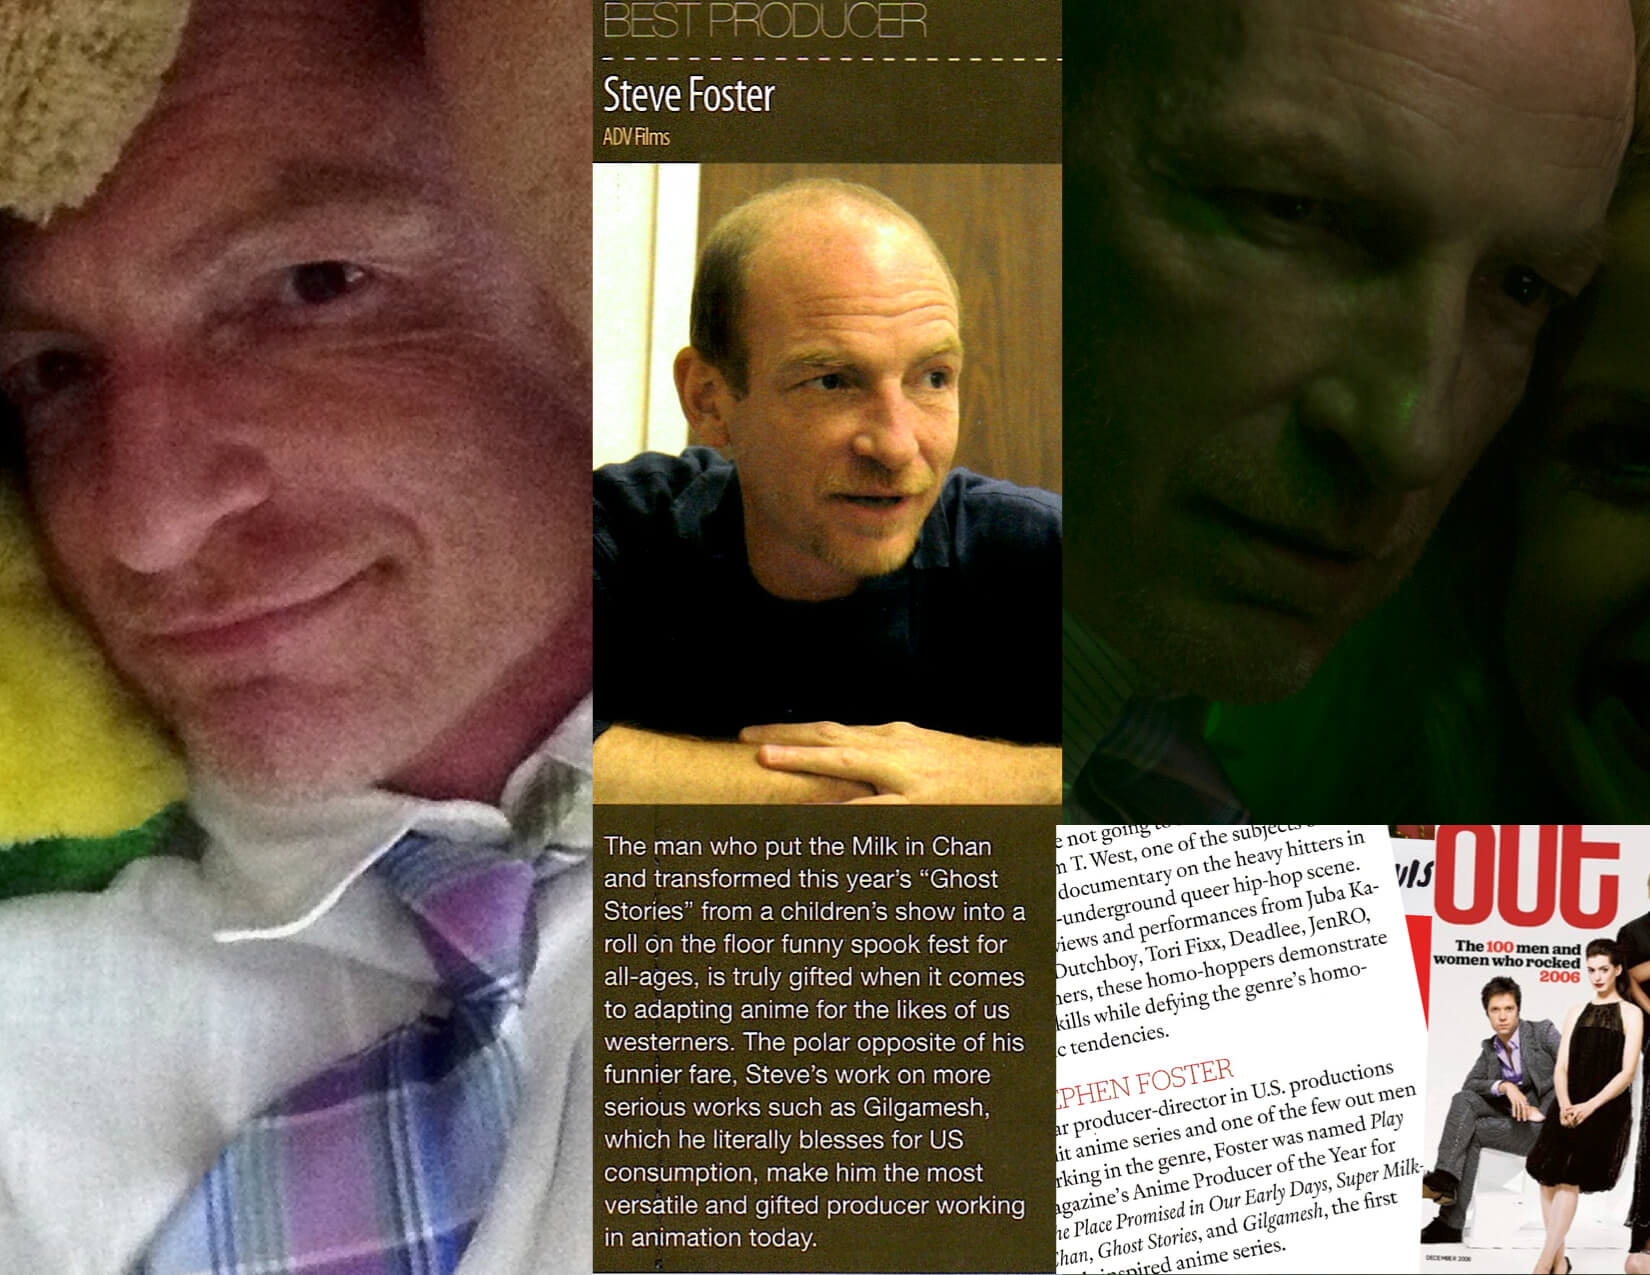 Grid of Best Producer of The Year Ste7en Foster in a tie, seated at a table, in the recording booth, and in Out Magazine